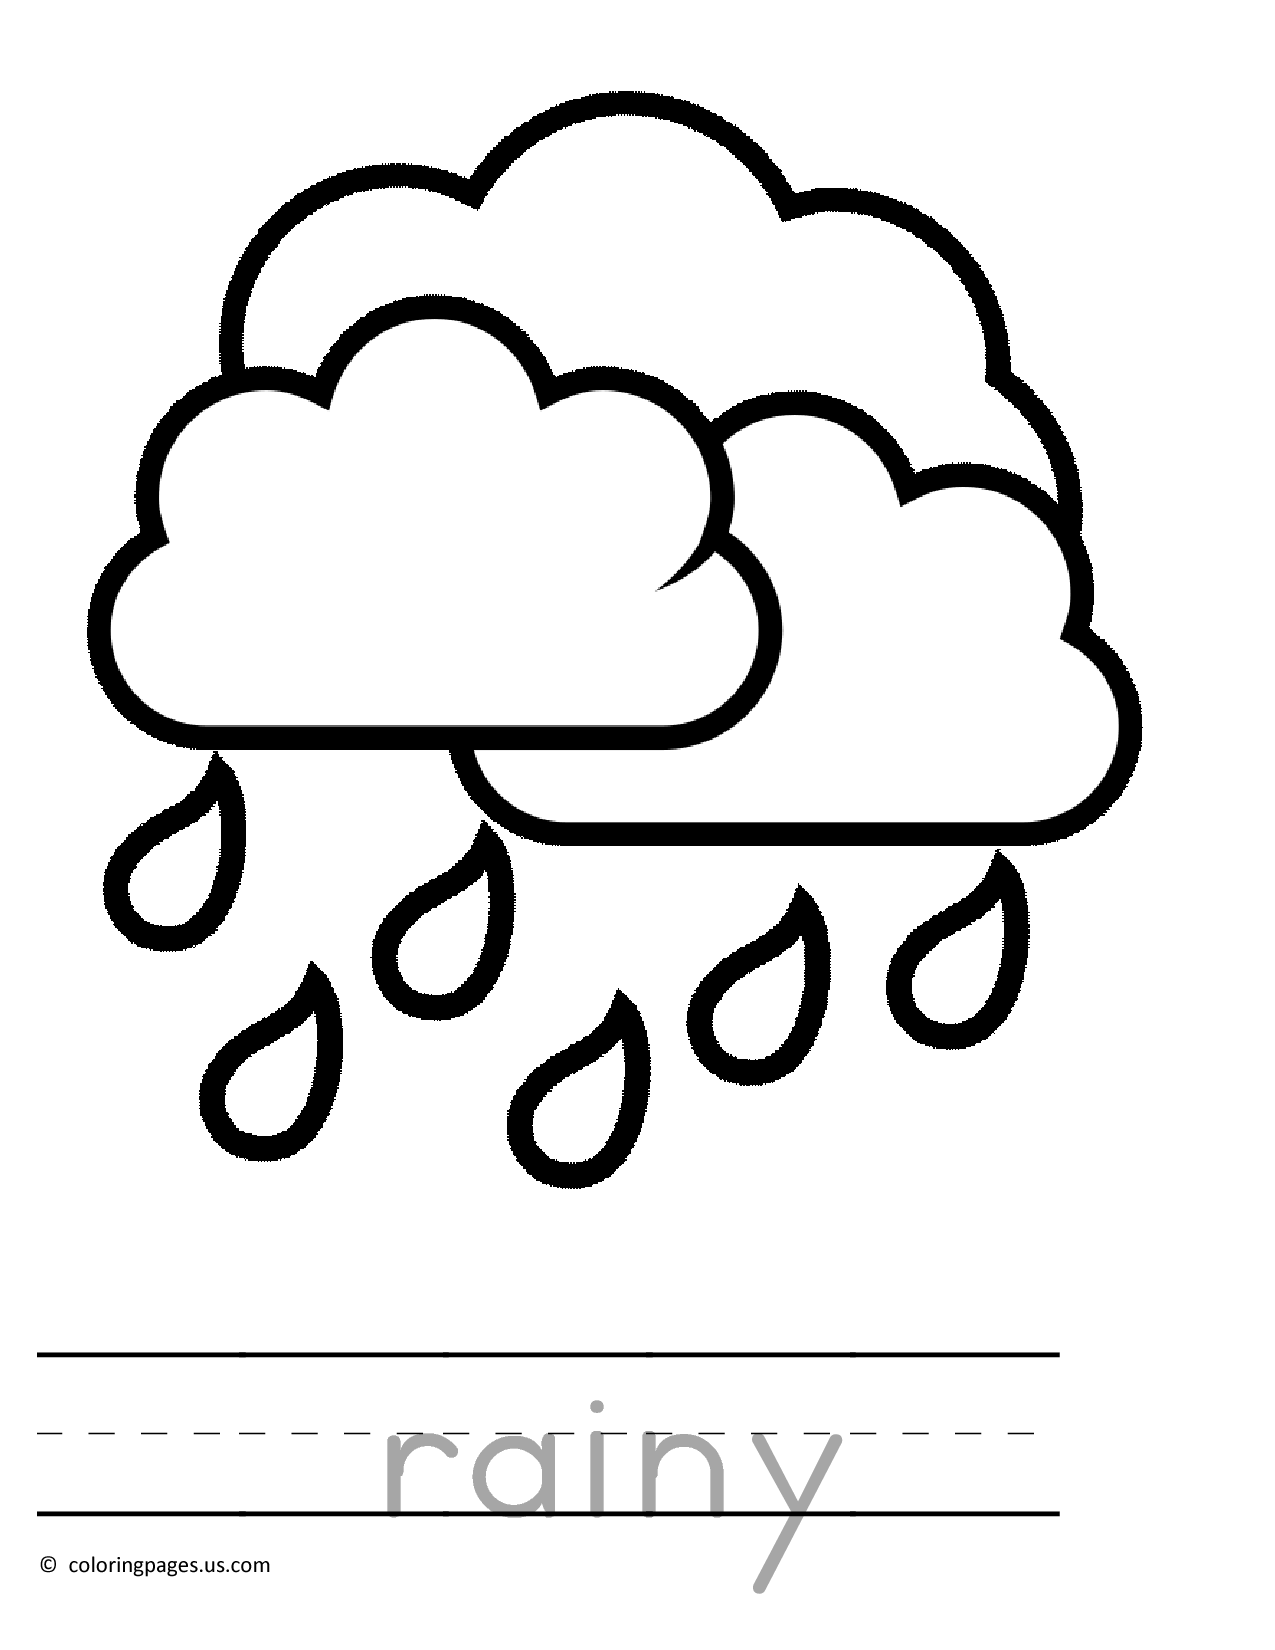 rainy day coloring pages for preschoolers rainy day drawing for kid at getdrawings free download pages coloring day rainy for preschoolers